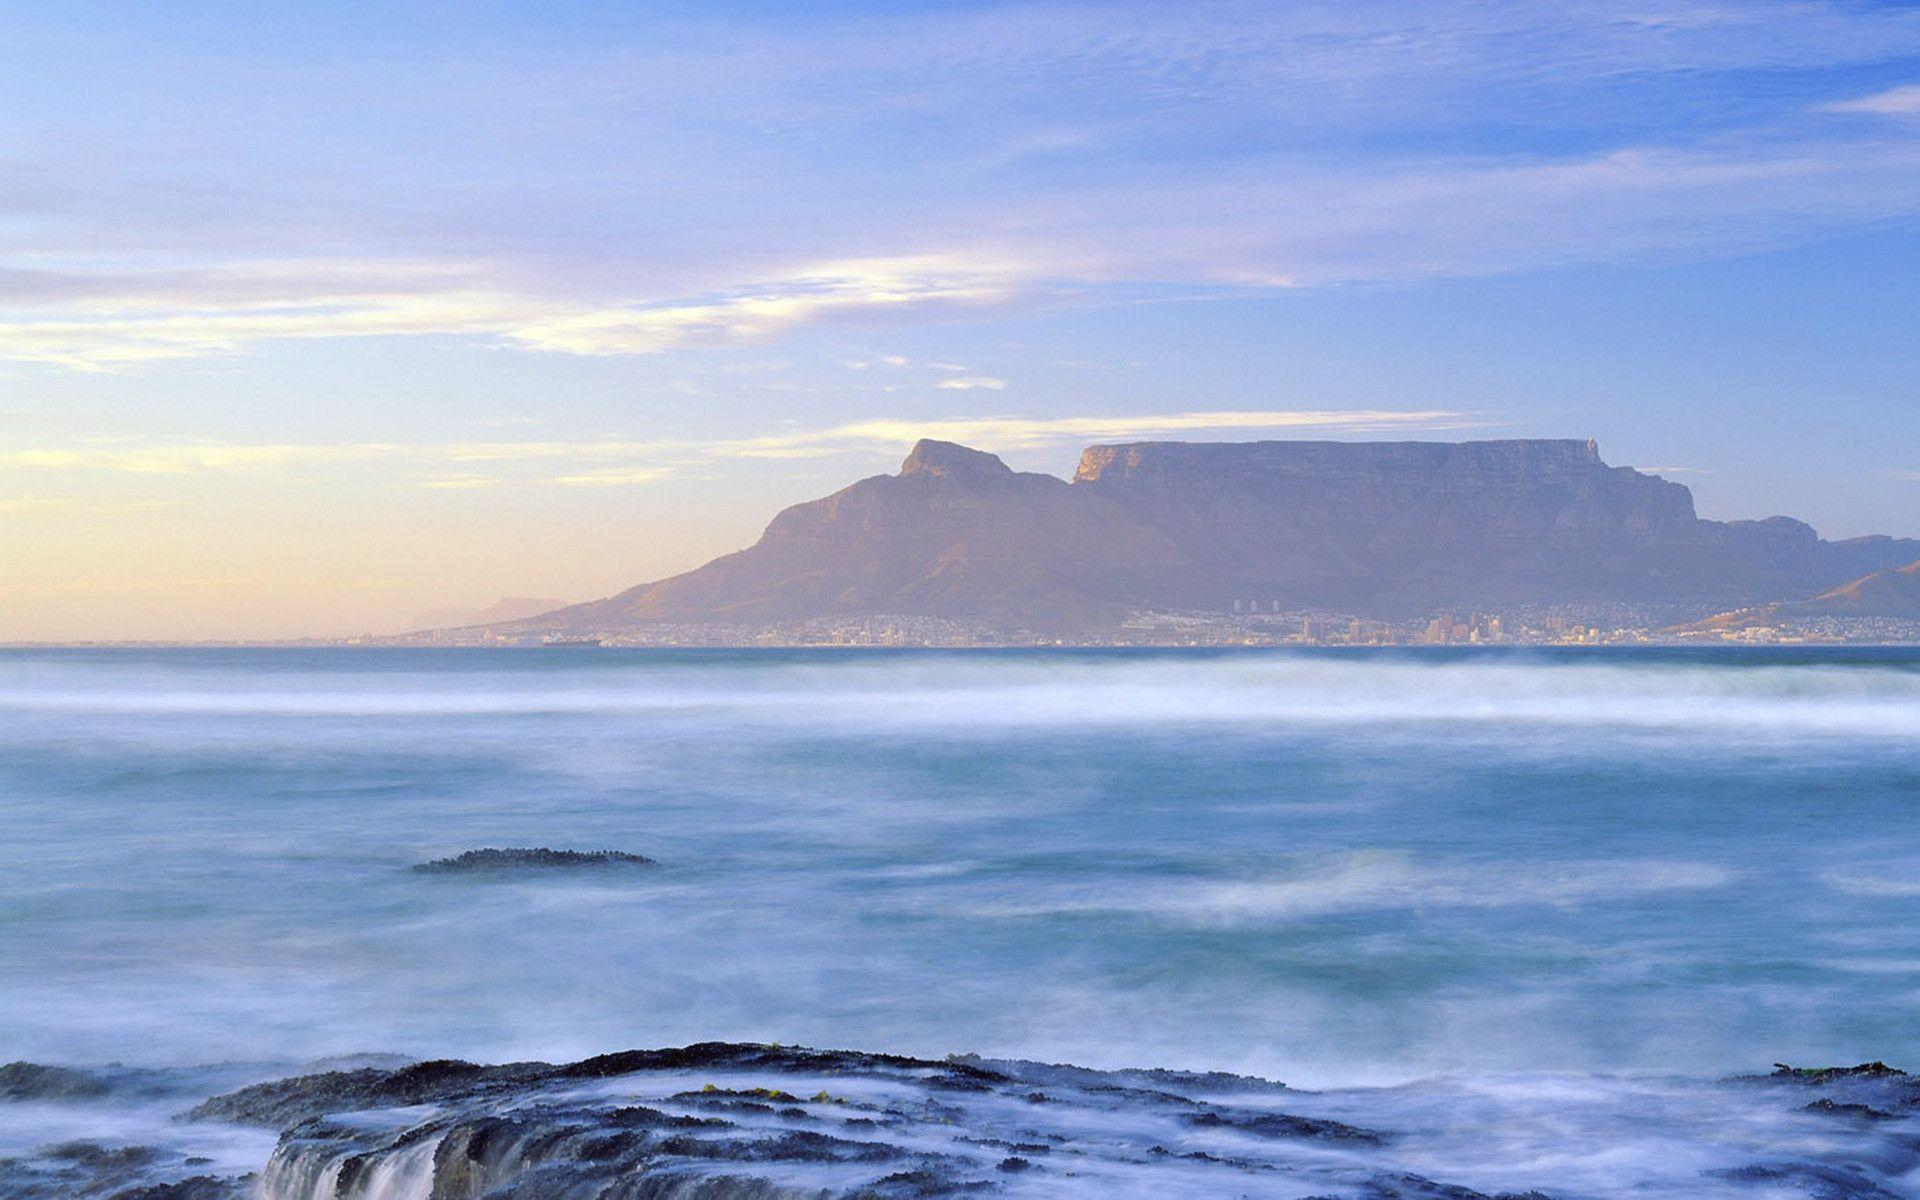 table-mountain-wallpaper-5 Mountain wallpaper HD free wallpapers ...